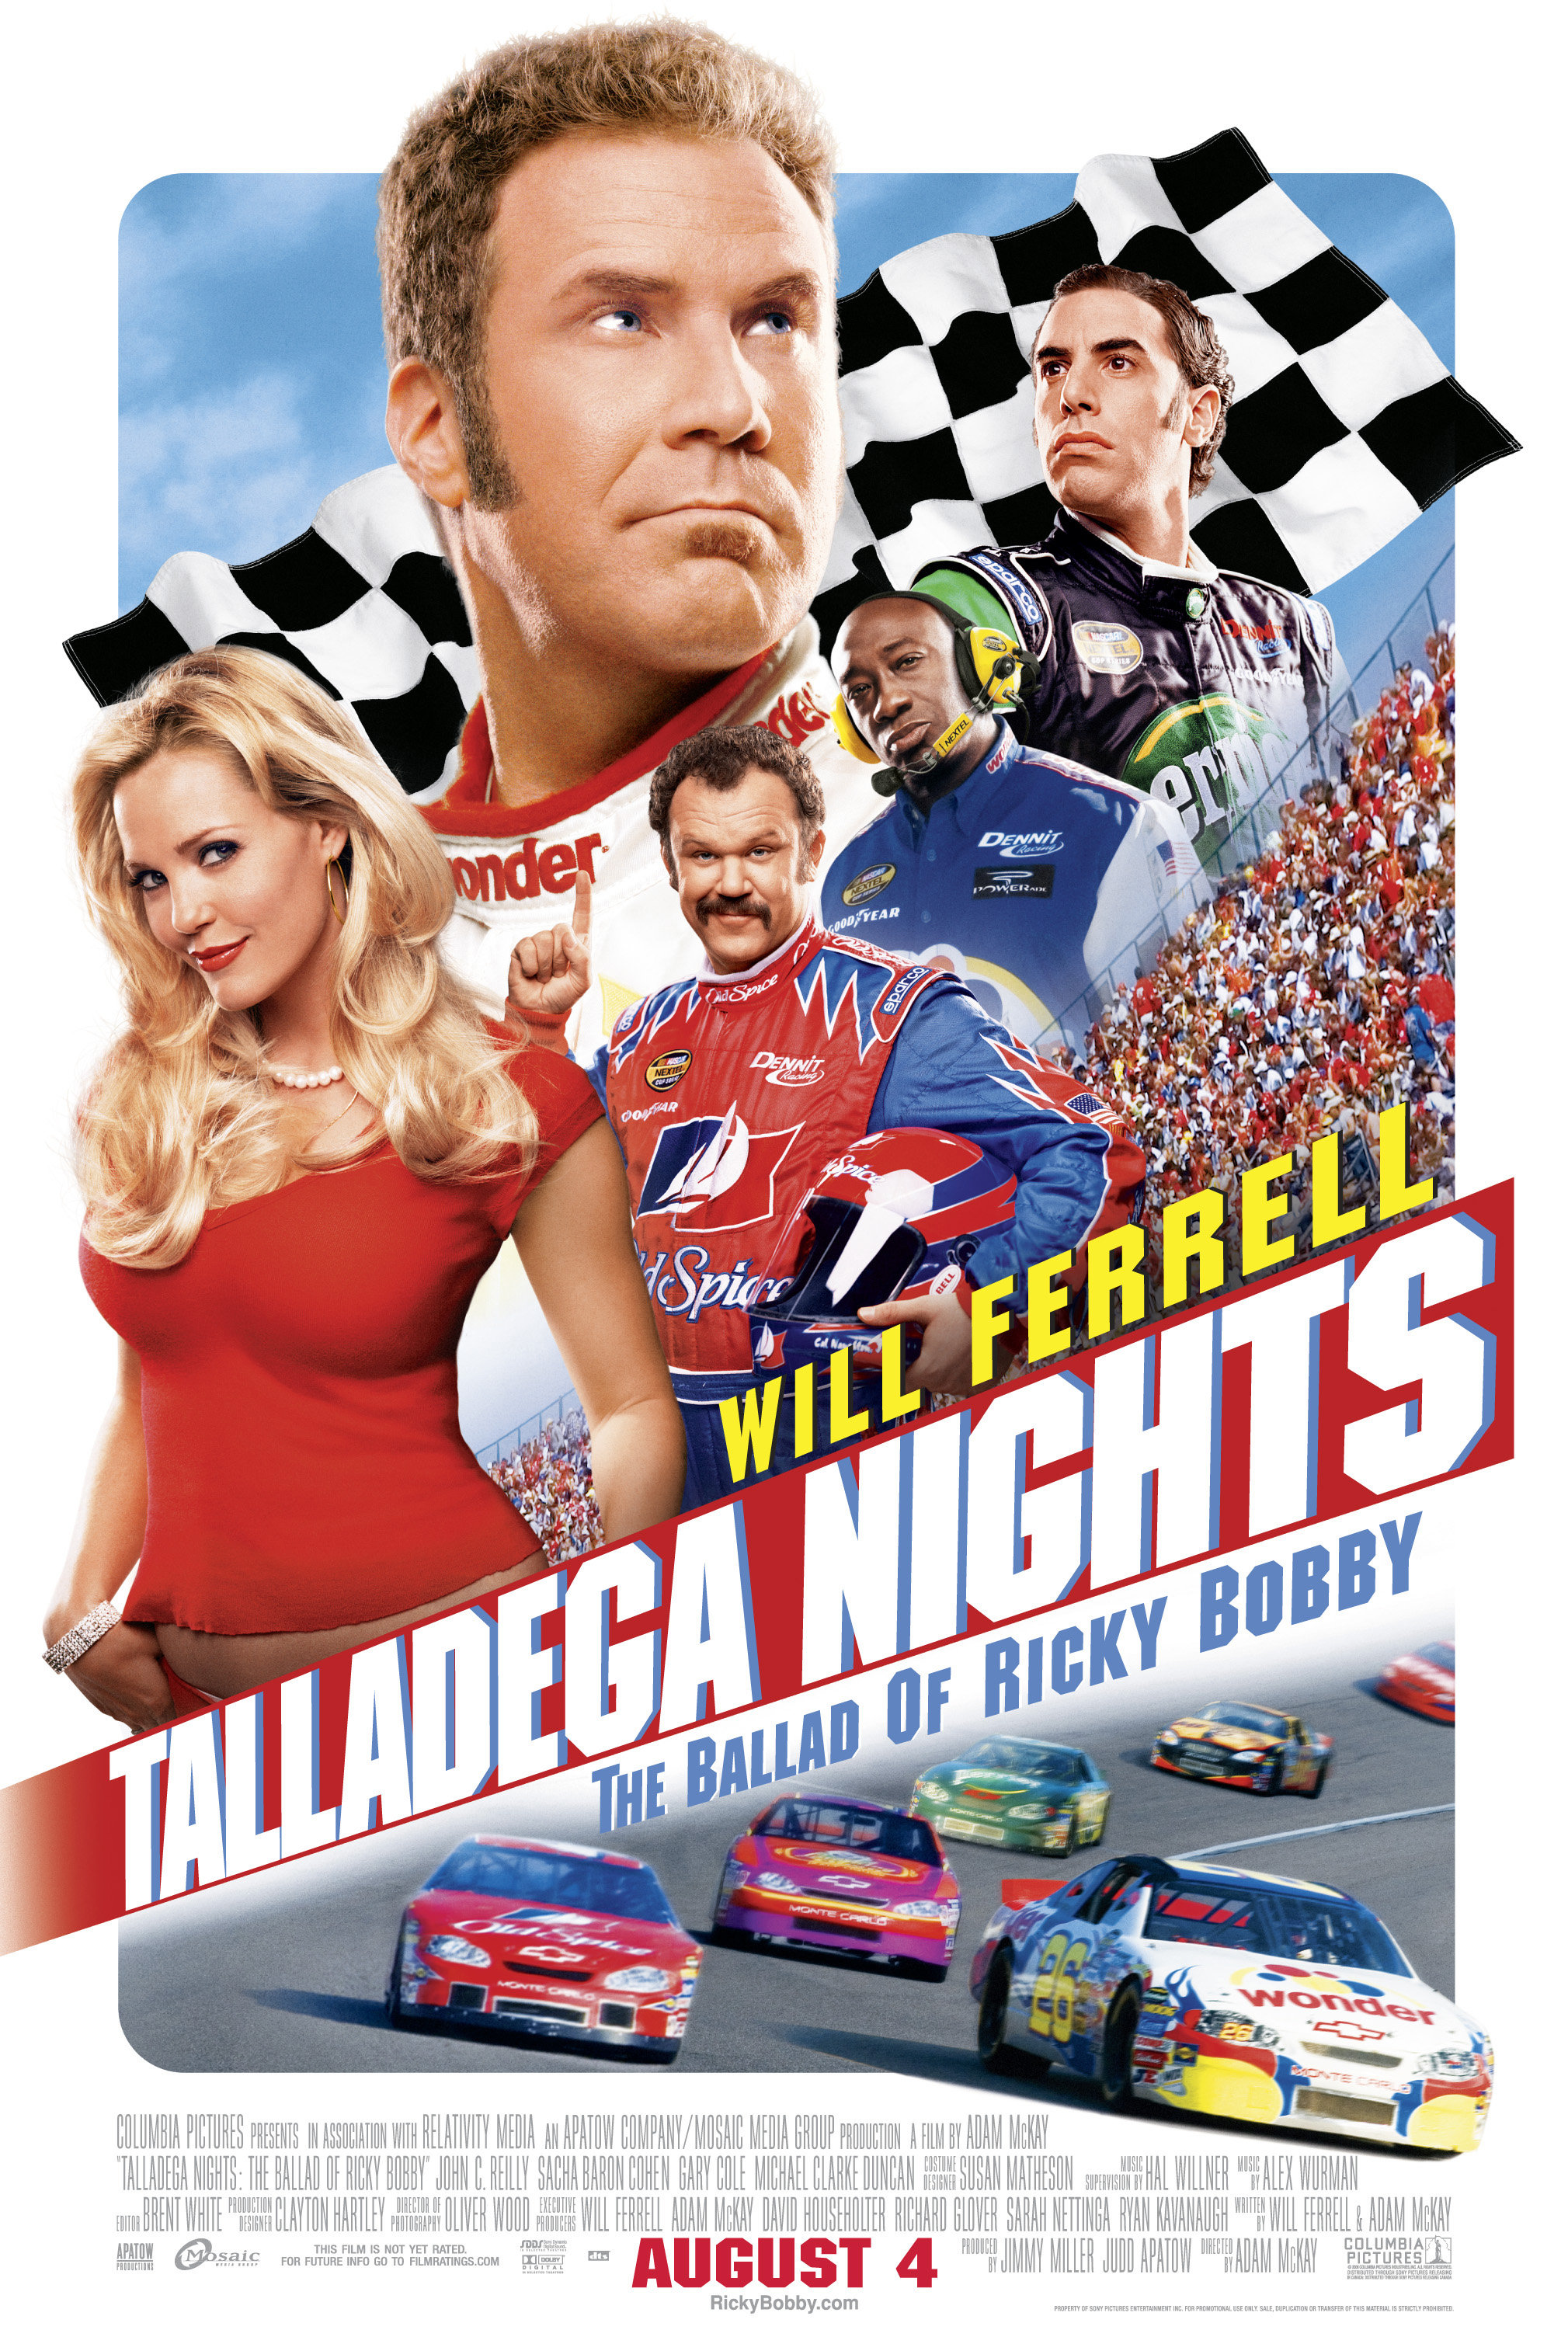 Shop talladega nights the ballad of ricky bobby movie poster.